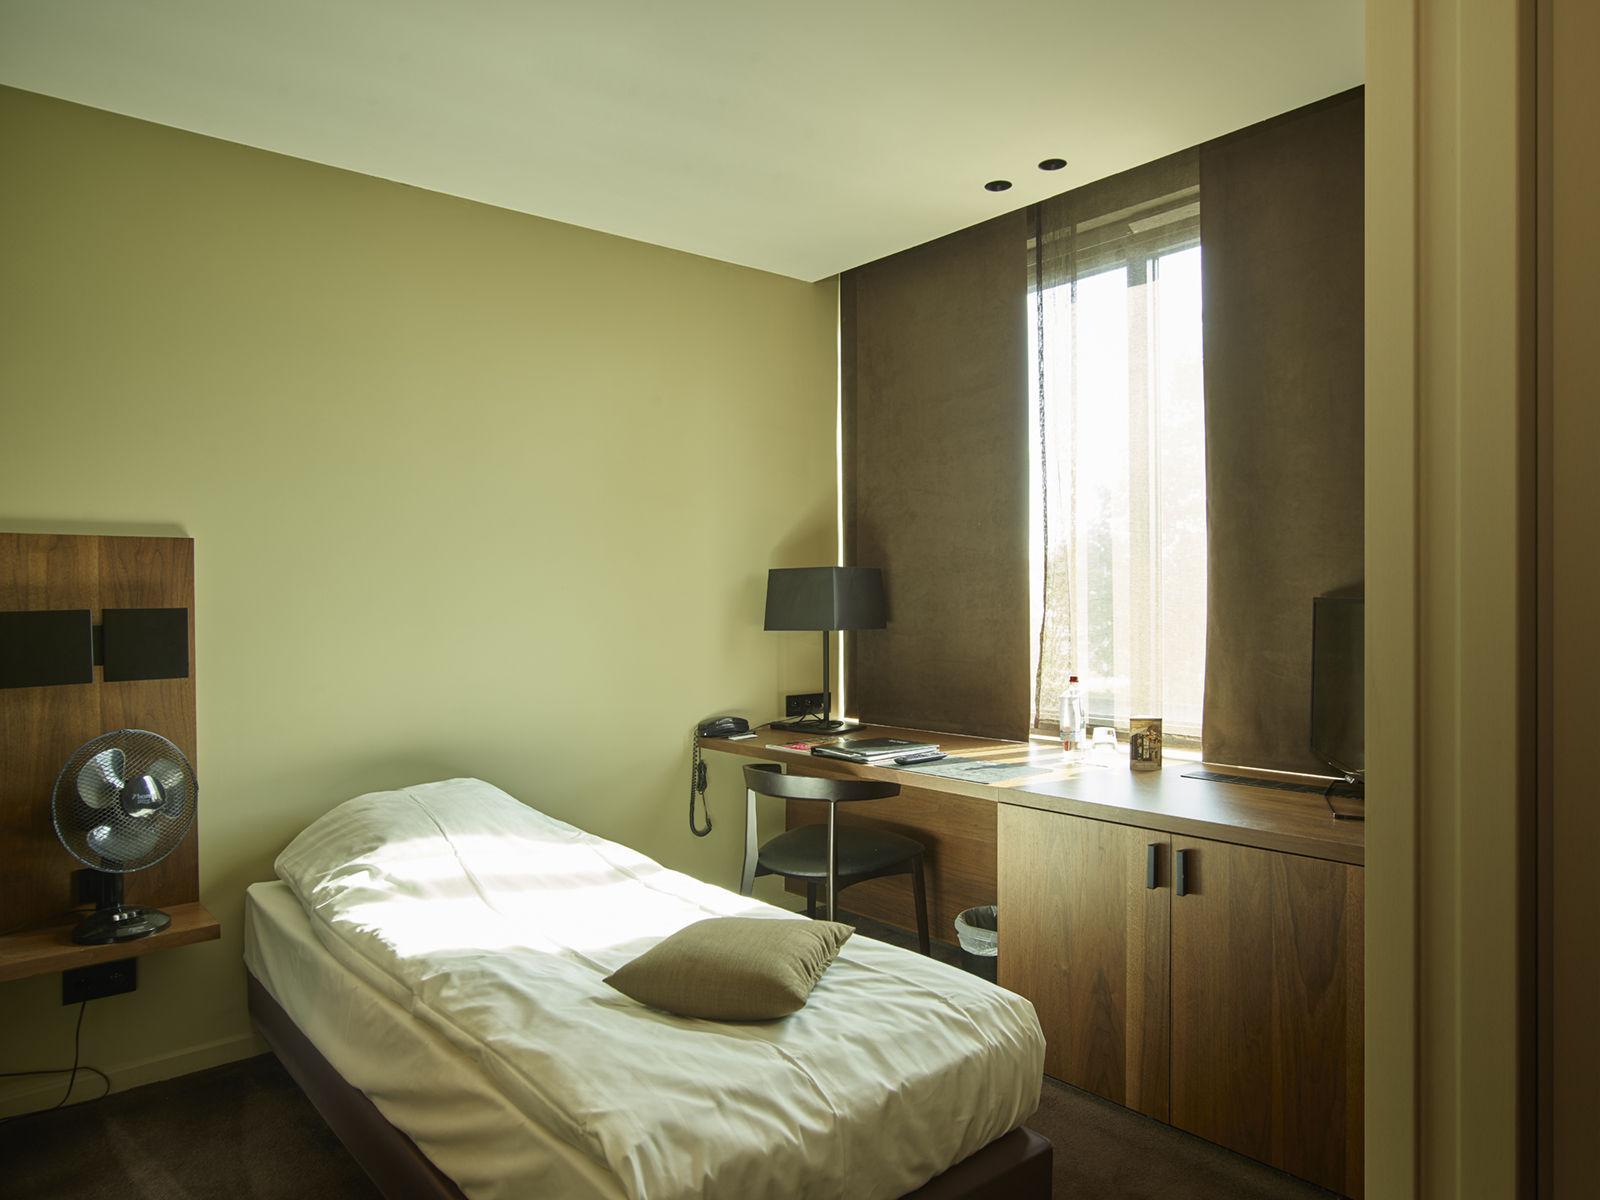 Single Room, comfort and privacy